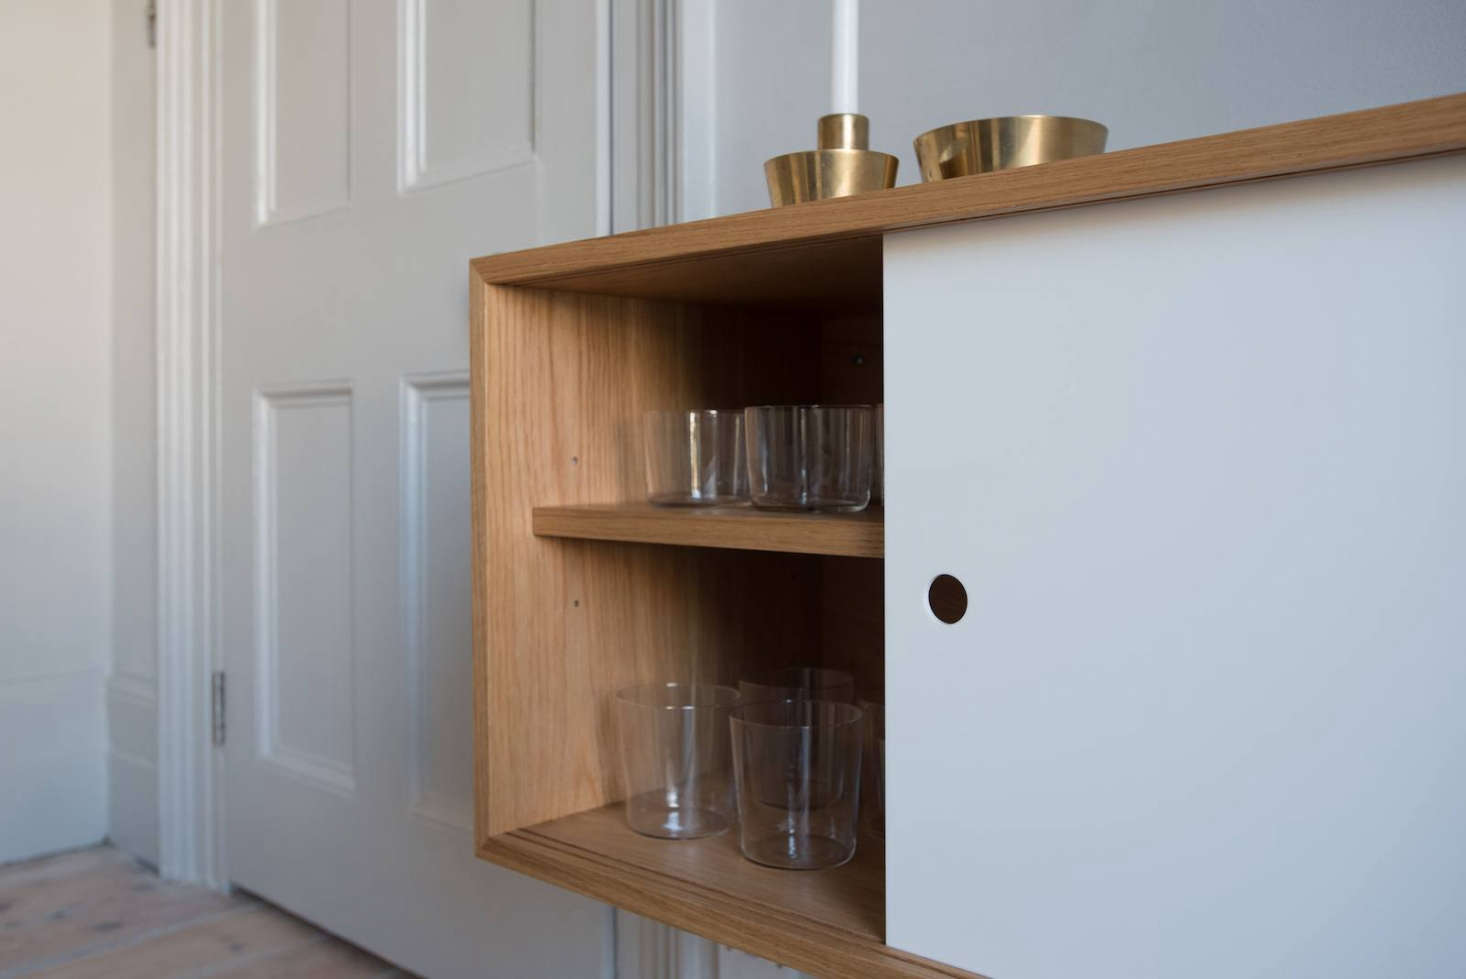 The sideboard is an extension of the kitchen and stores breakfast cereals plus everyday plates and glasses.